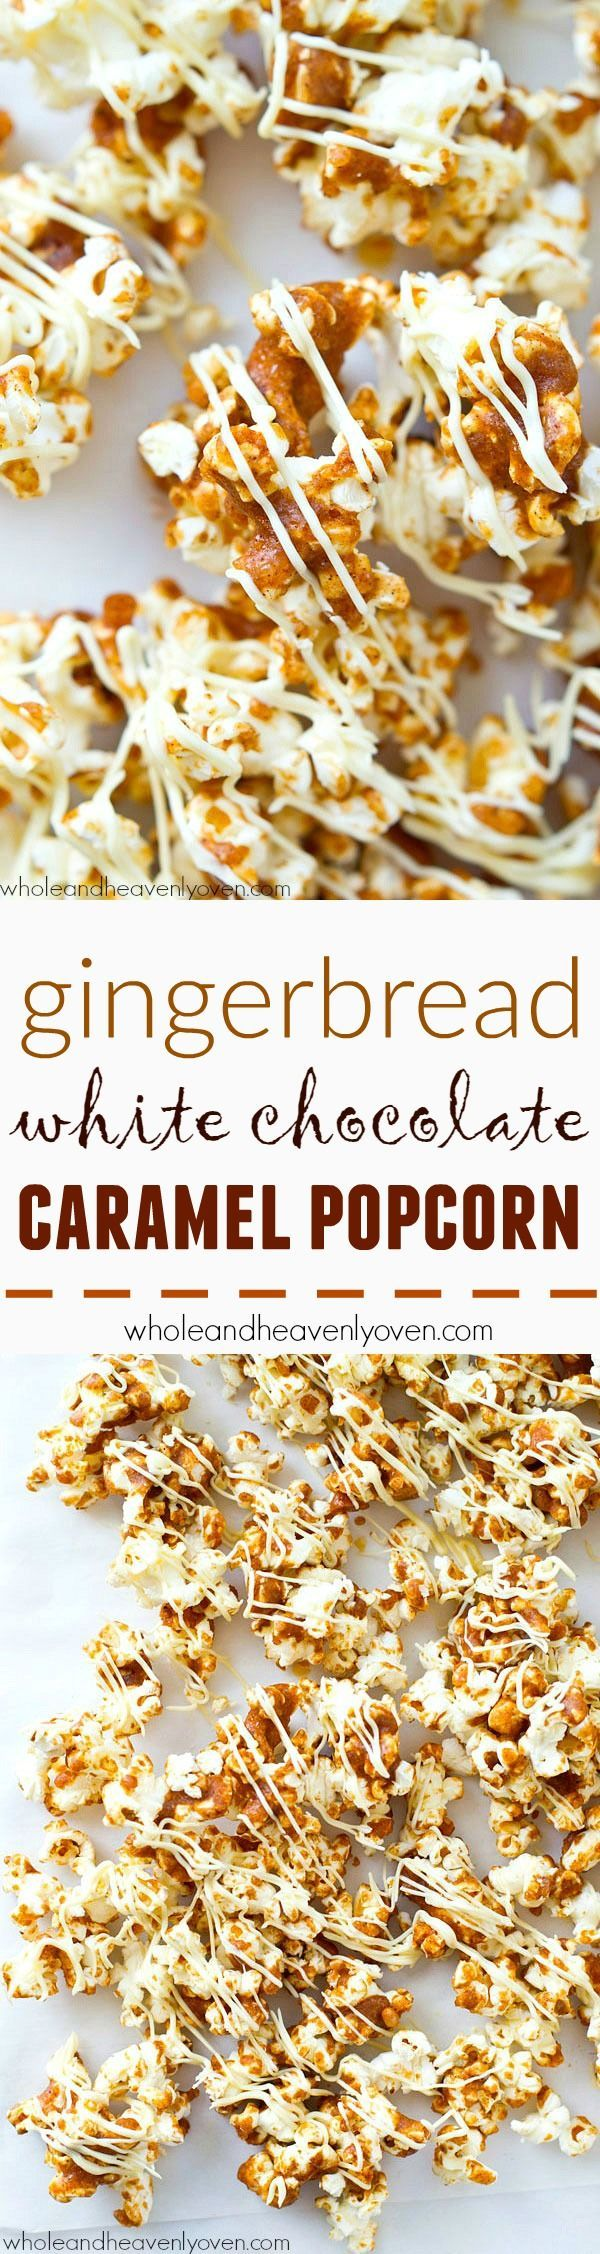 Coated in a gingerbread-spiced caramel sauce and drizzled with plenty of white chocolate, this dynamite caramel popcorn is nearly impossible to stop eating! @WholeHeavenly